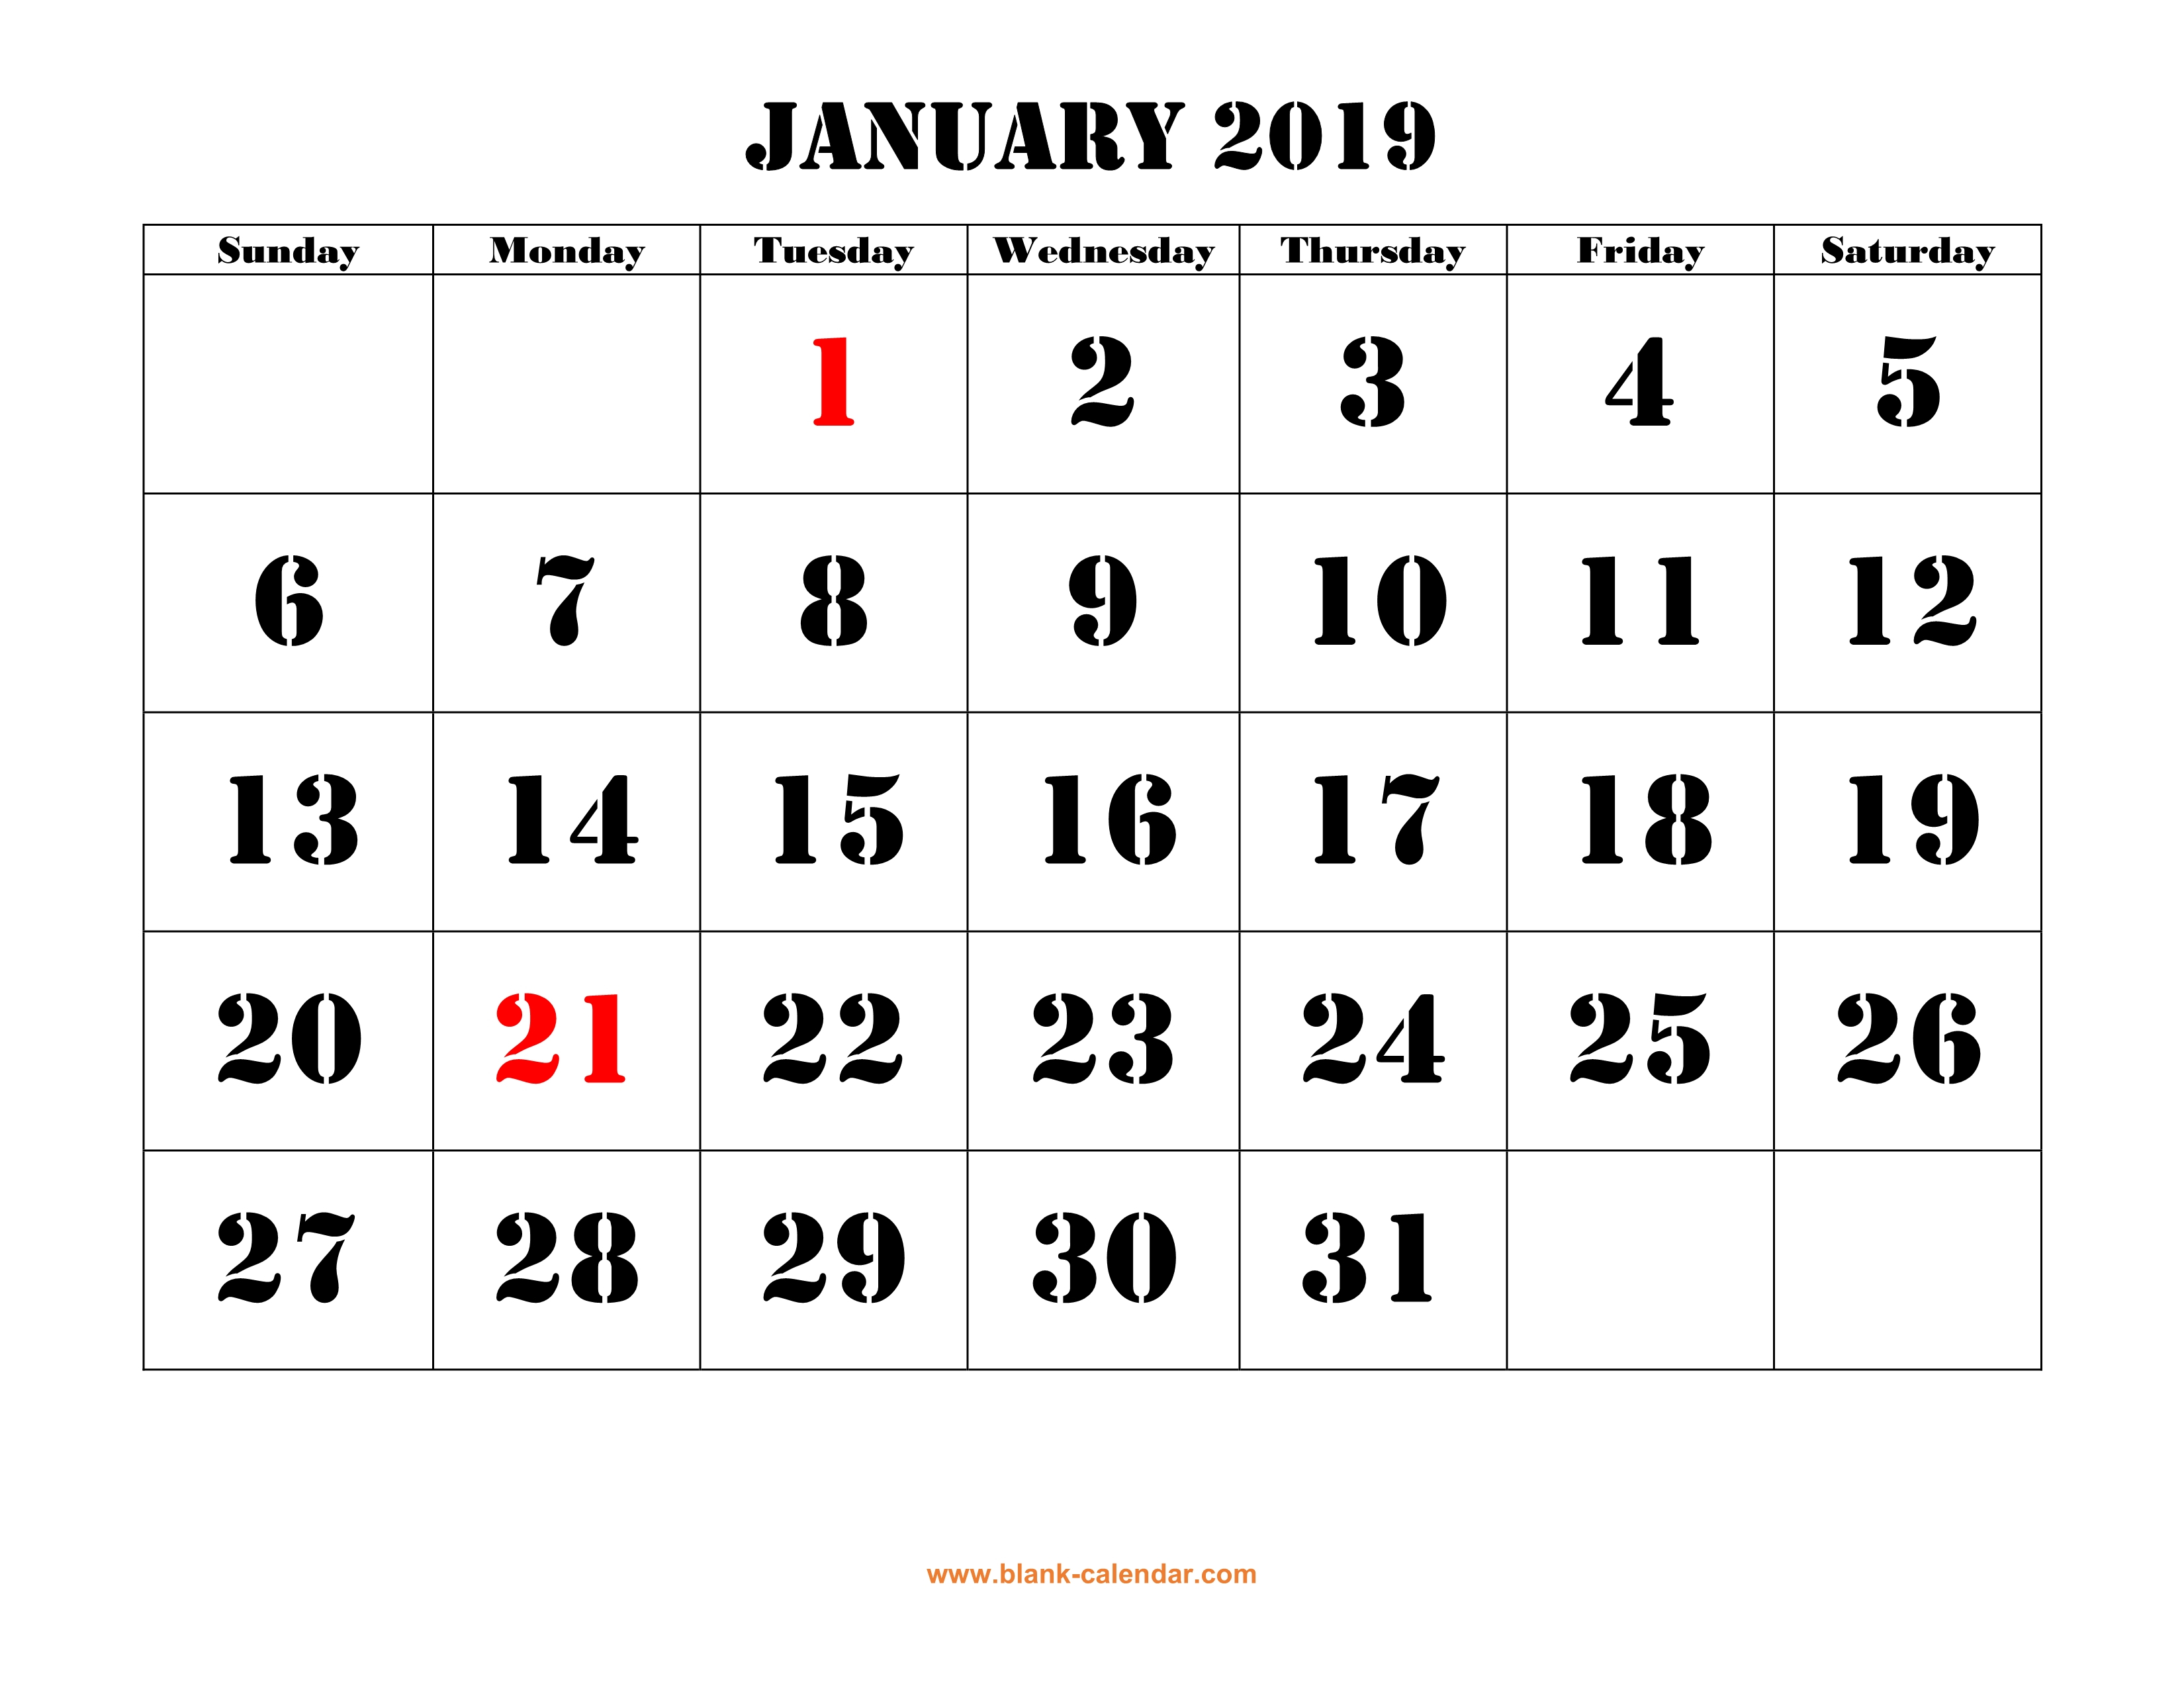 Free Download Printable Calendar 2019, Large Font Design , Holidays in 1 Page Calendar 2019-2020 With Major Holidays